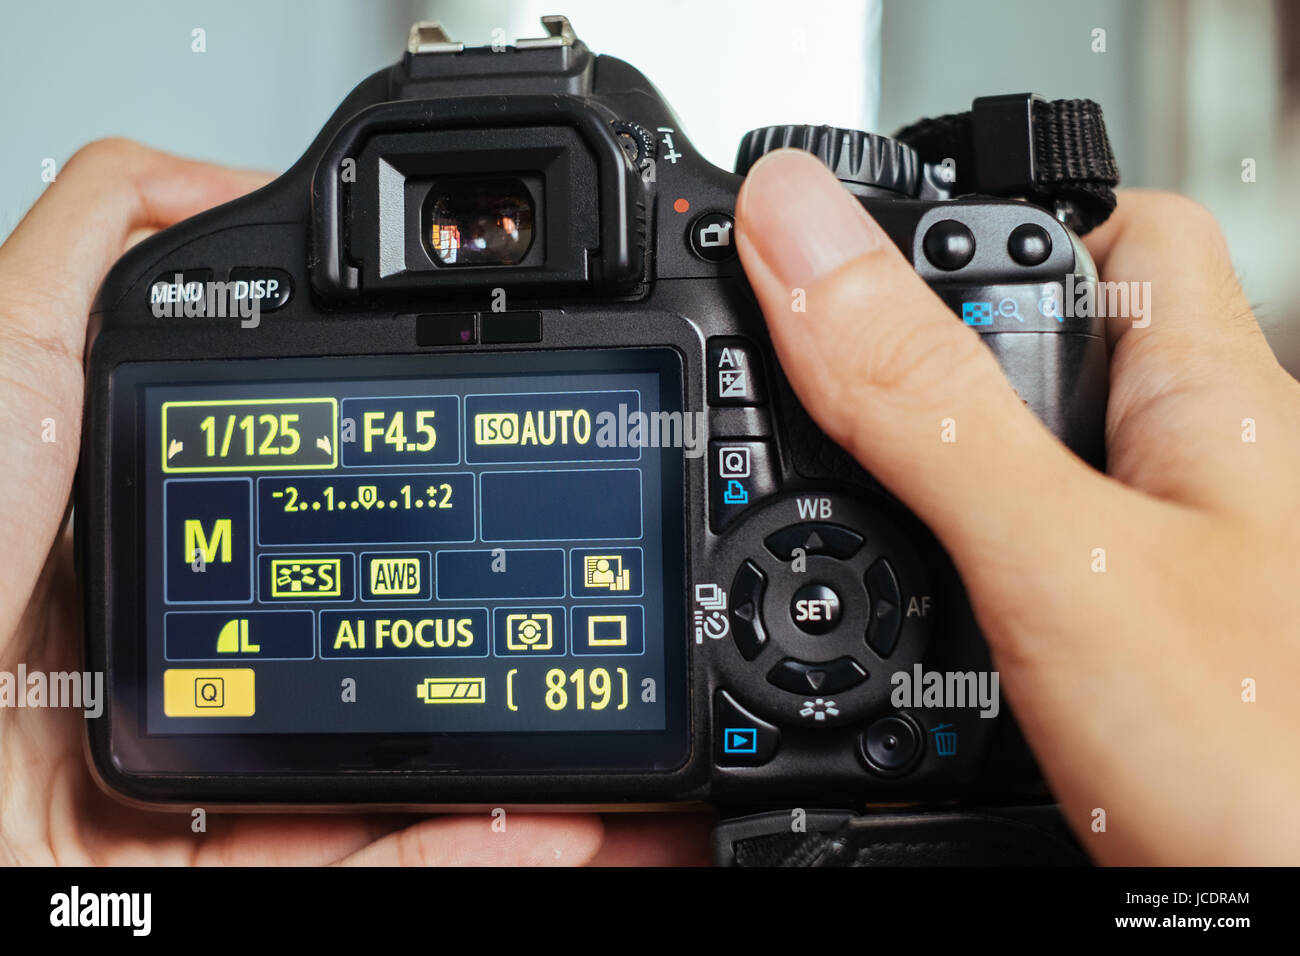 DSLR camera on human hands - Stock Image